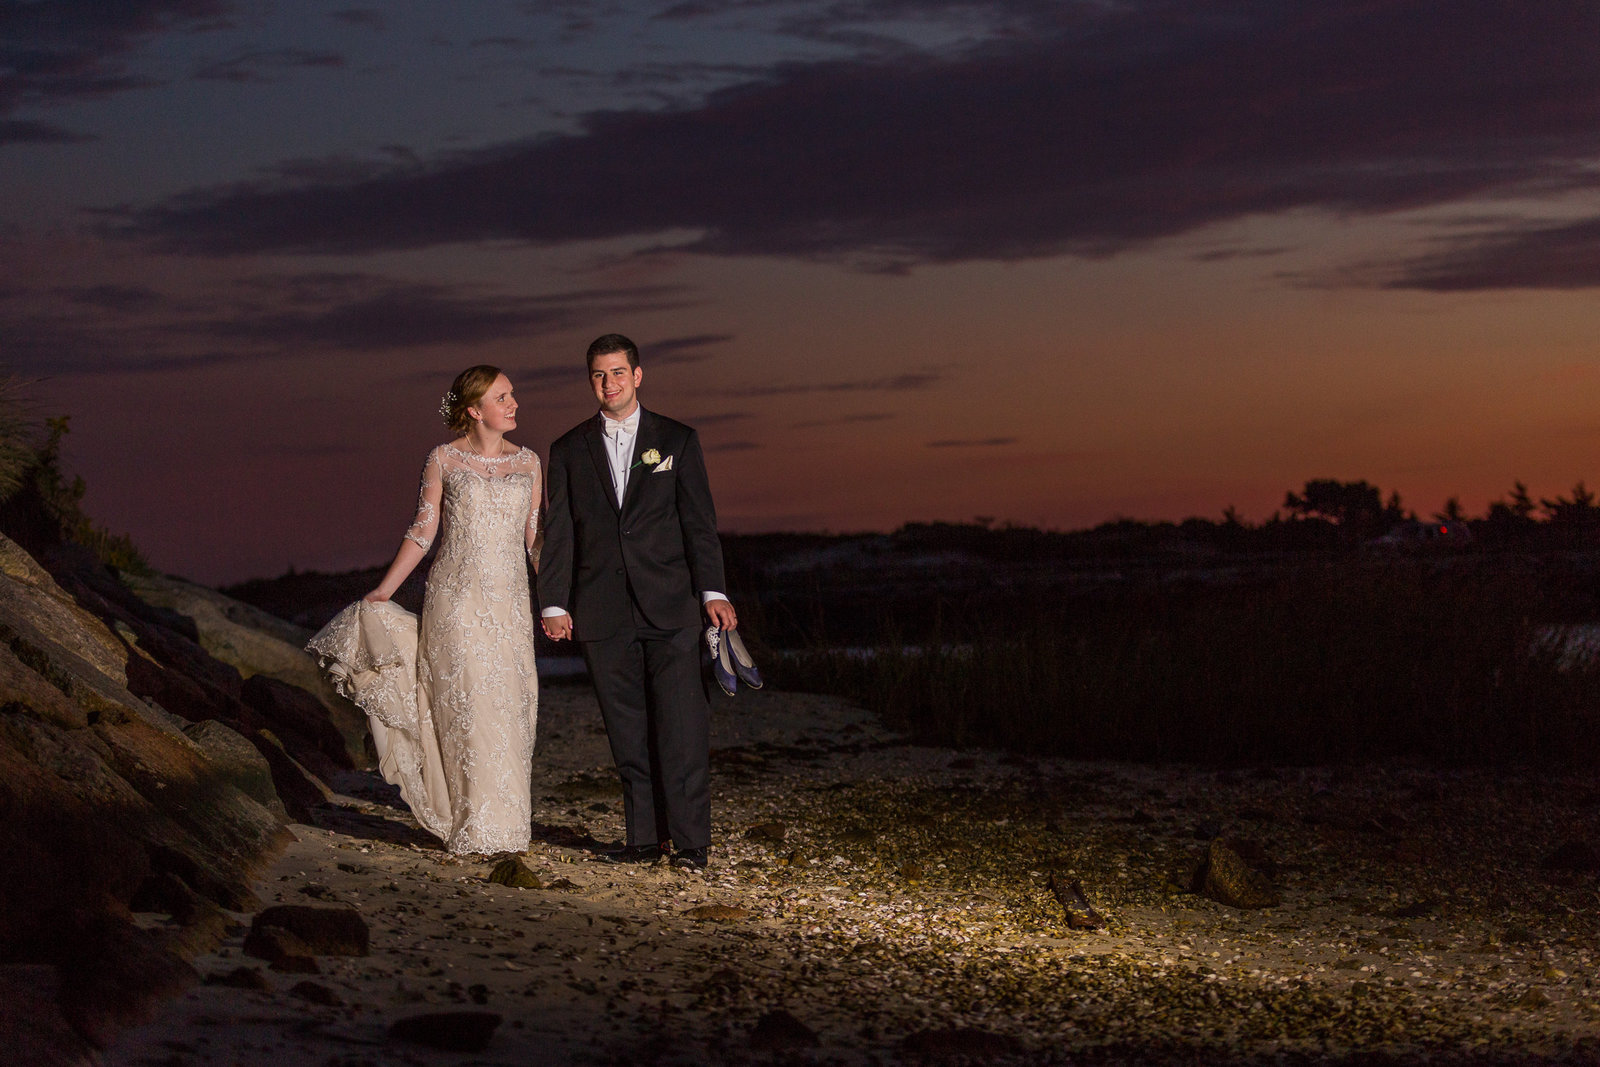 ThompsonIsland_BostonWeddingPhotographer_CapeCodWeddingPhotography_MichelleKayePhotography-16